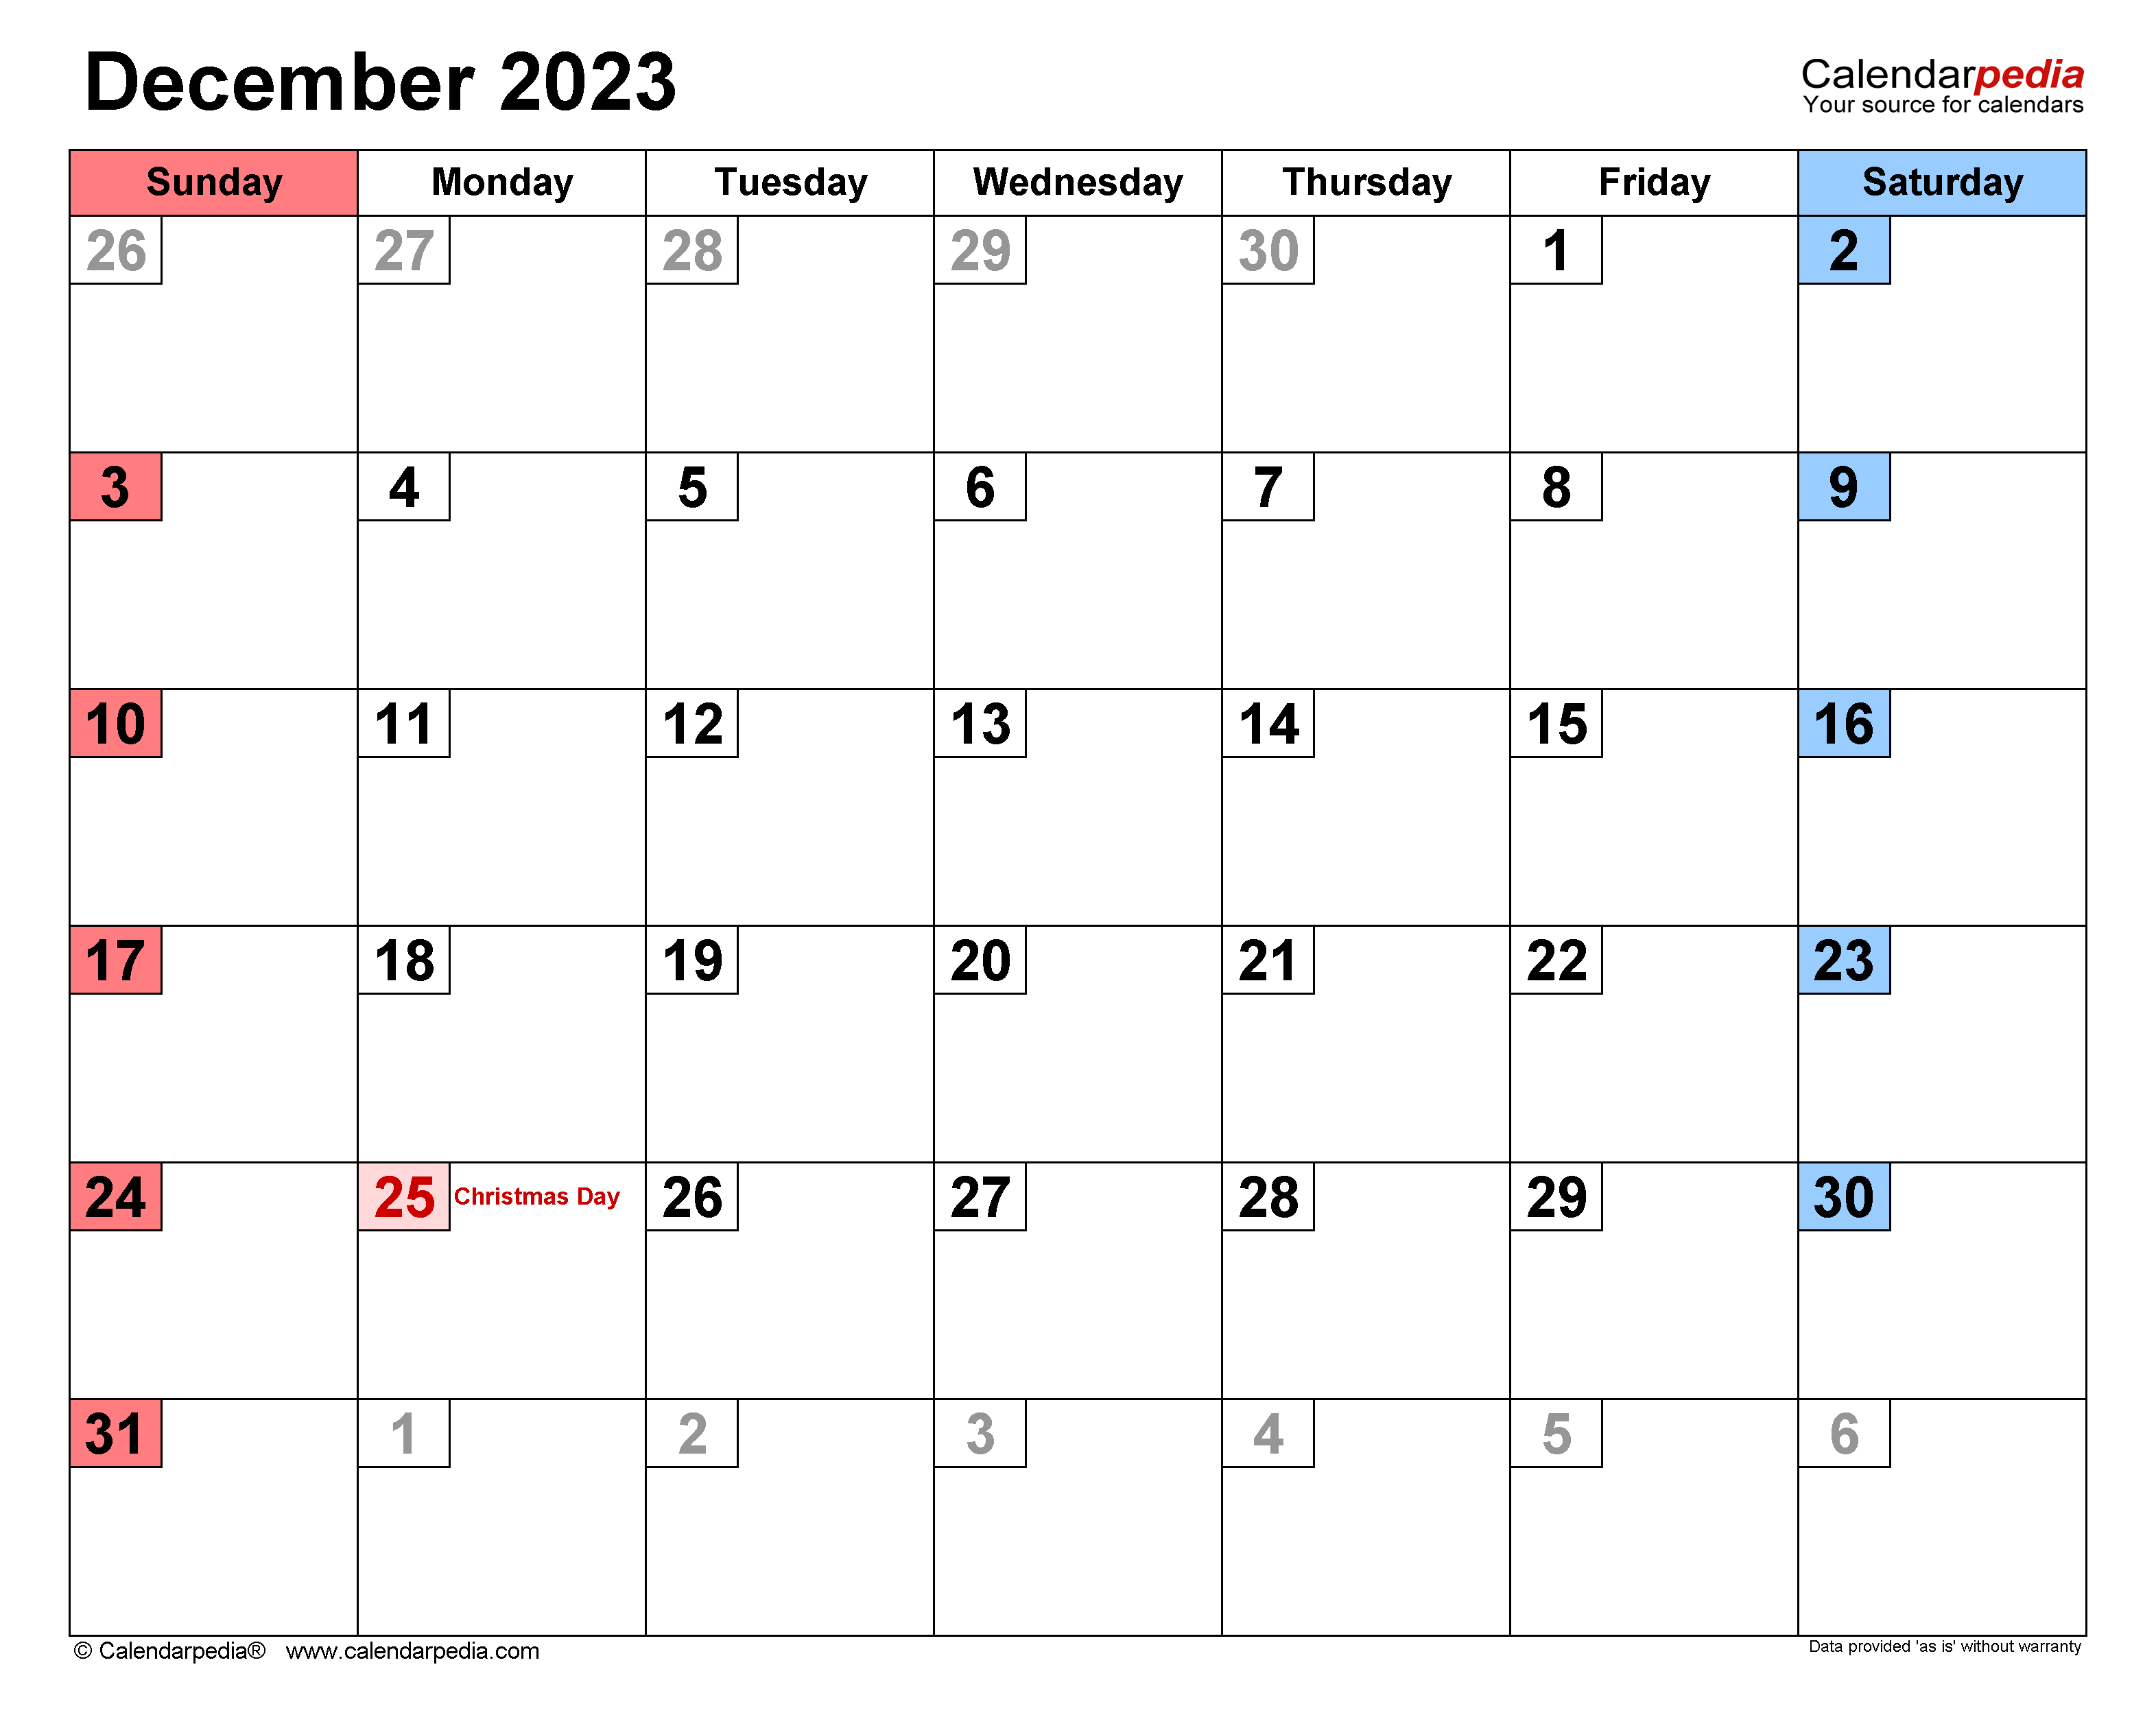 December 2023 And January 2022 Calendar.December 2023 Calendar Templates For Word Excel And Pdf